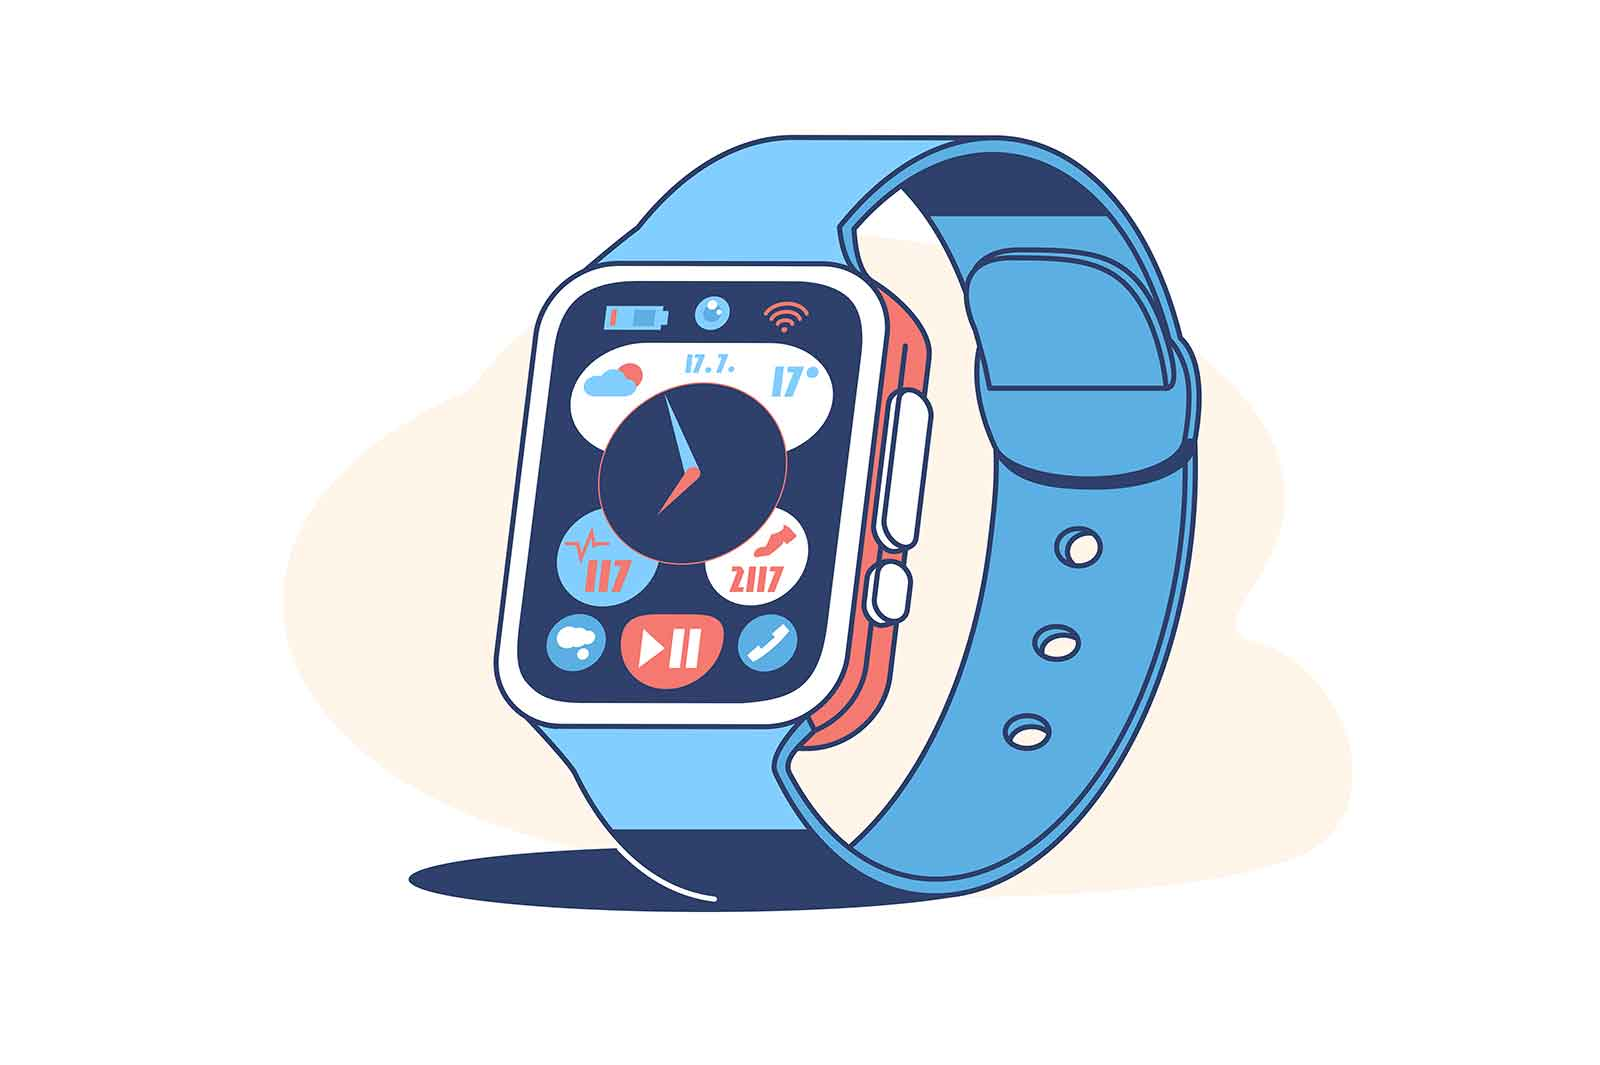 Smart watch device display with app icons vector illustration. Fitness tracker flat style. Blue colour of accessory. Modern technology concept. Isolated on white background